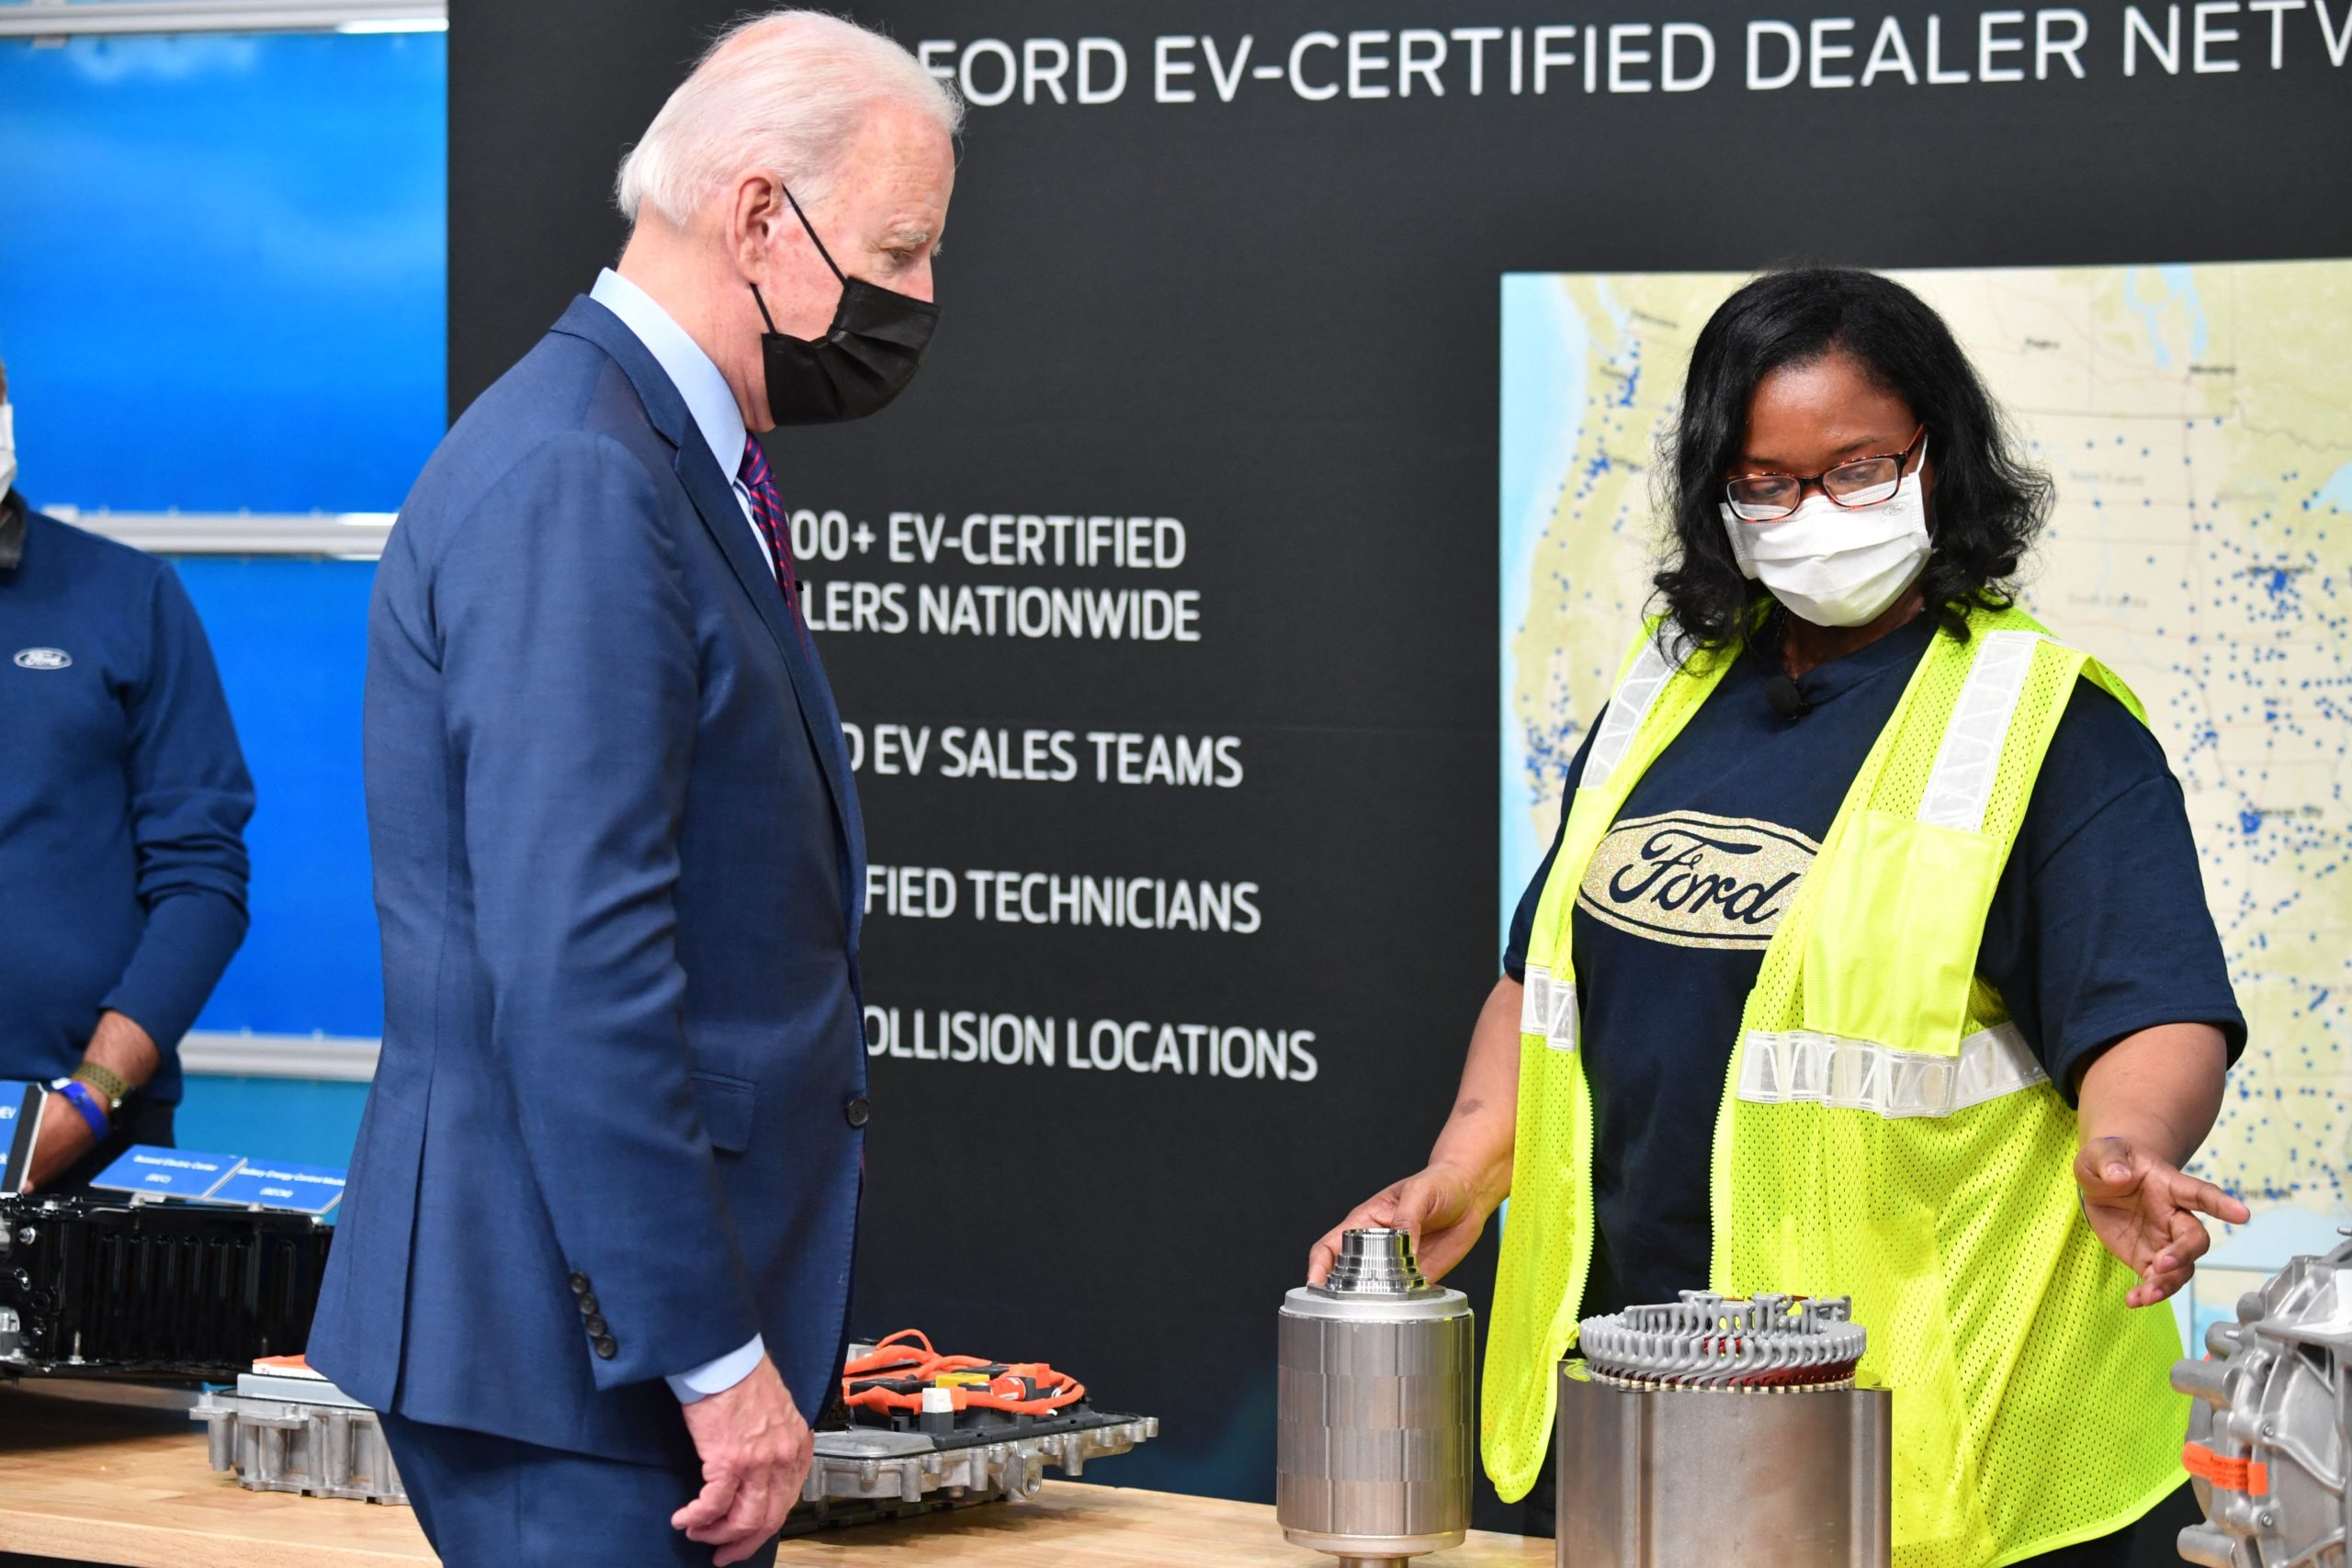 President Joe Biden listens during a tour of the Ford Rouge Electric Vehicle Center in Dearborn, Michigan on May 18. (Nicholas Kamm/AFP via Getty Images)